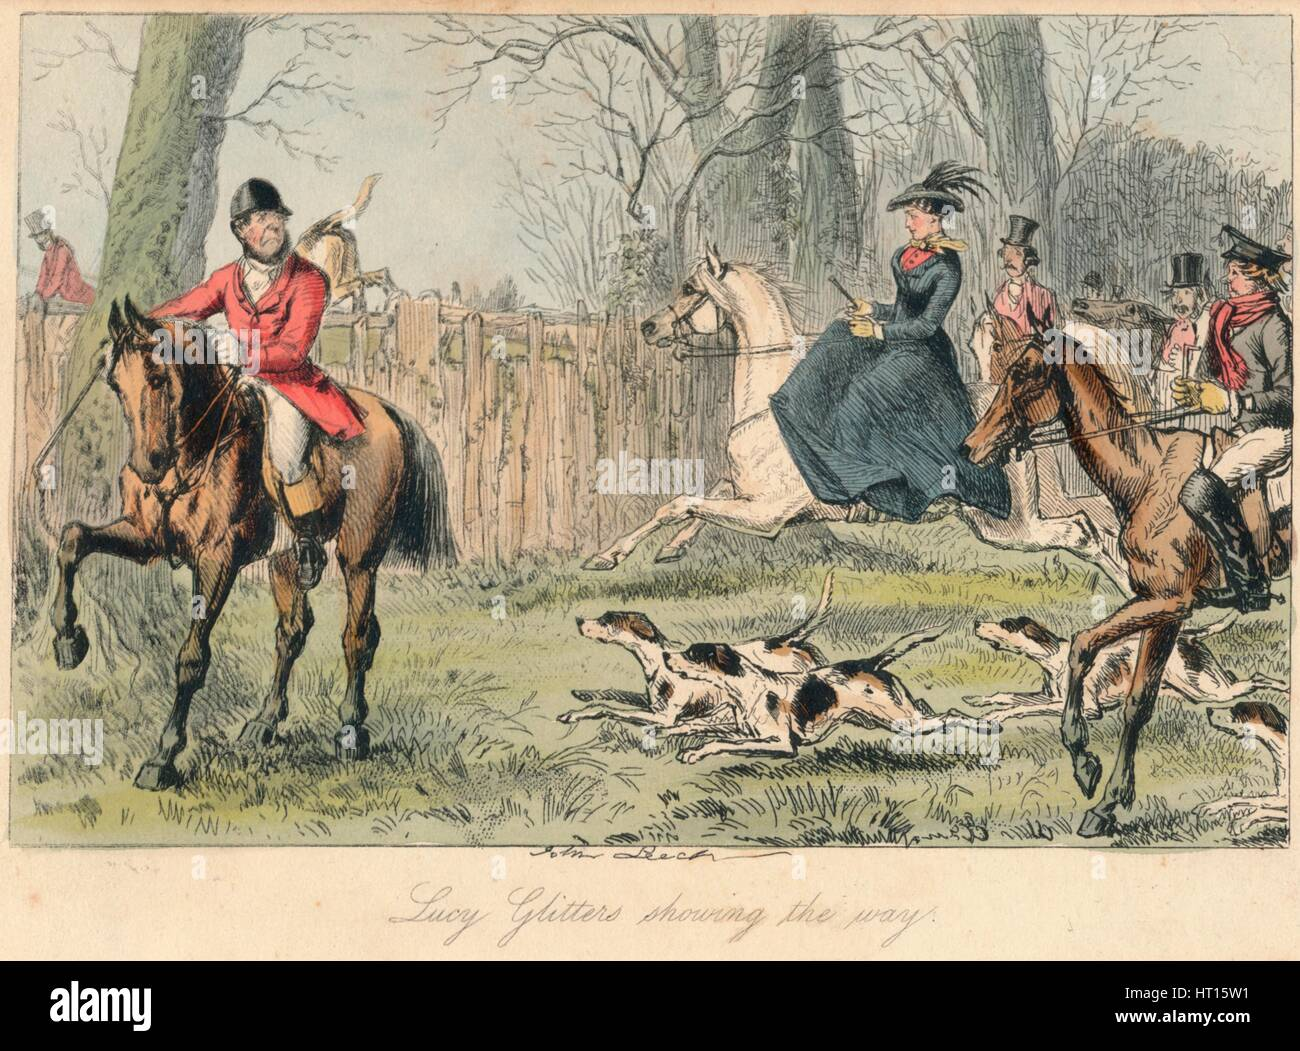 'Lucy Glitters showing the way', 1865. Artists: John Leech, Hablot Knight Browne. - Stock Image